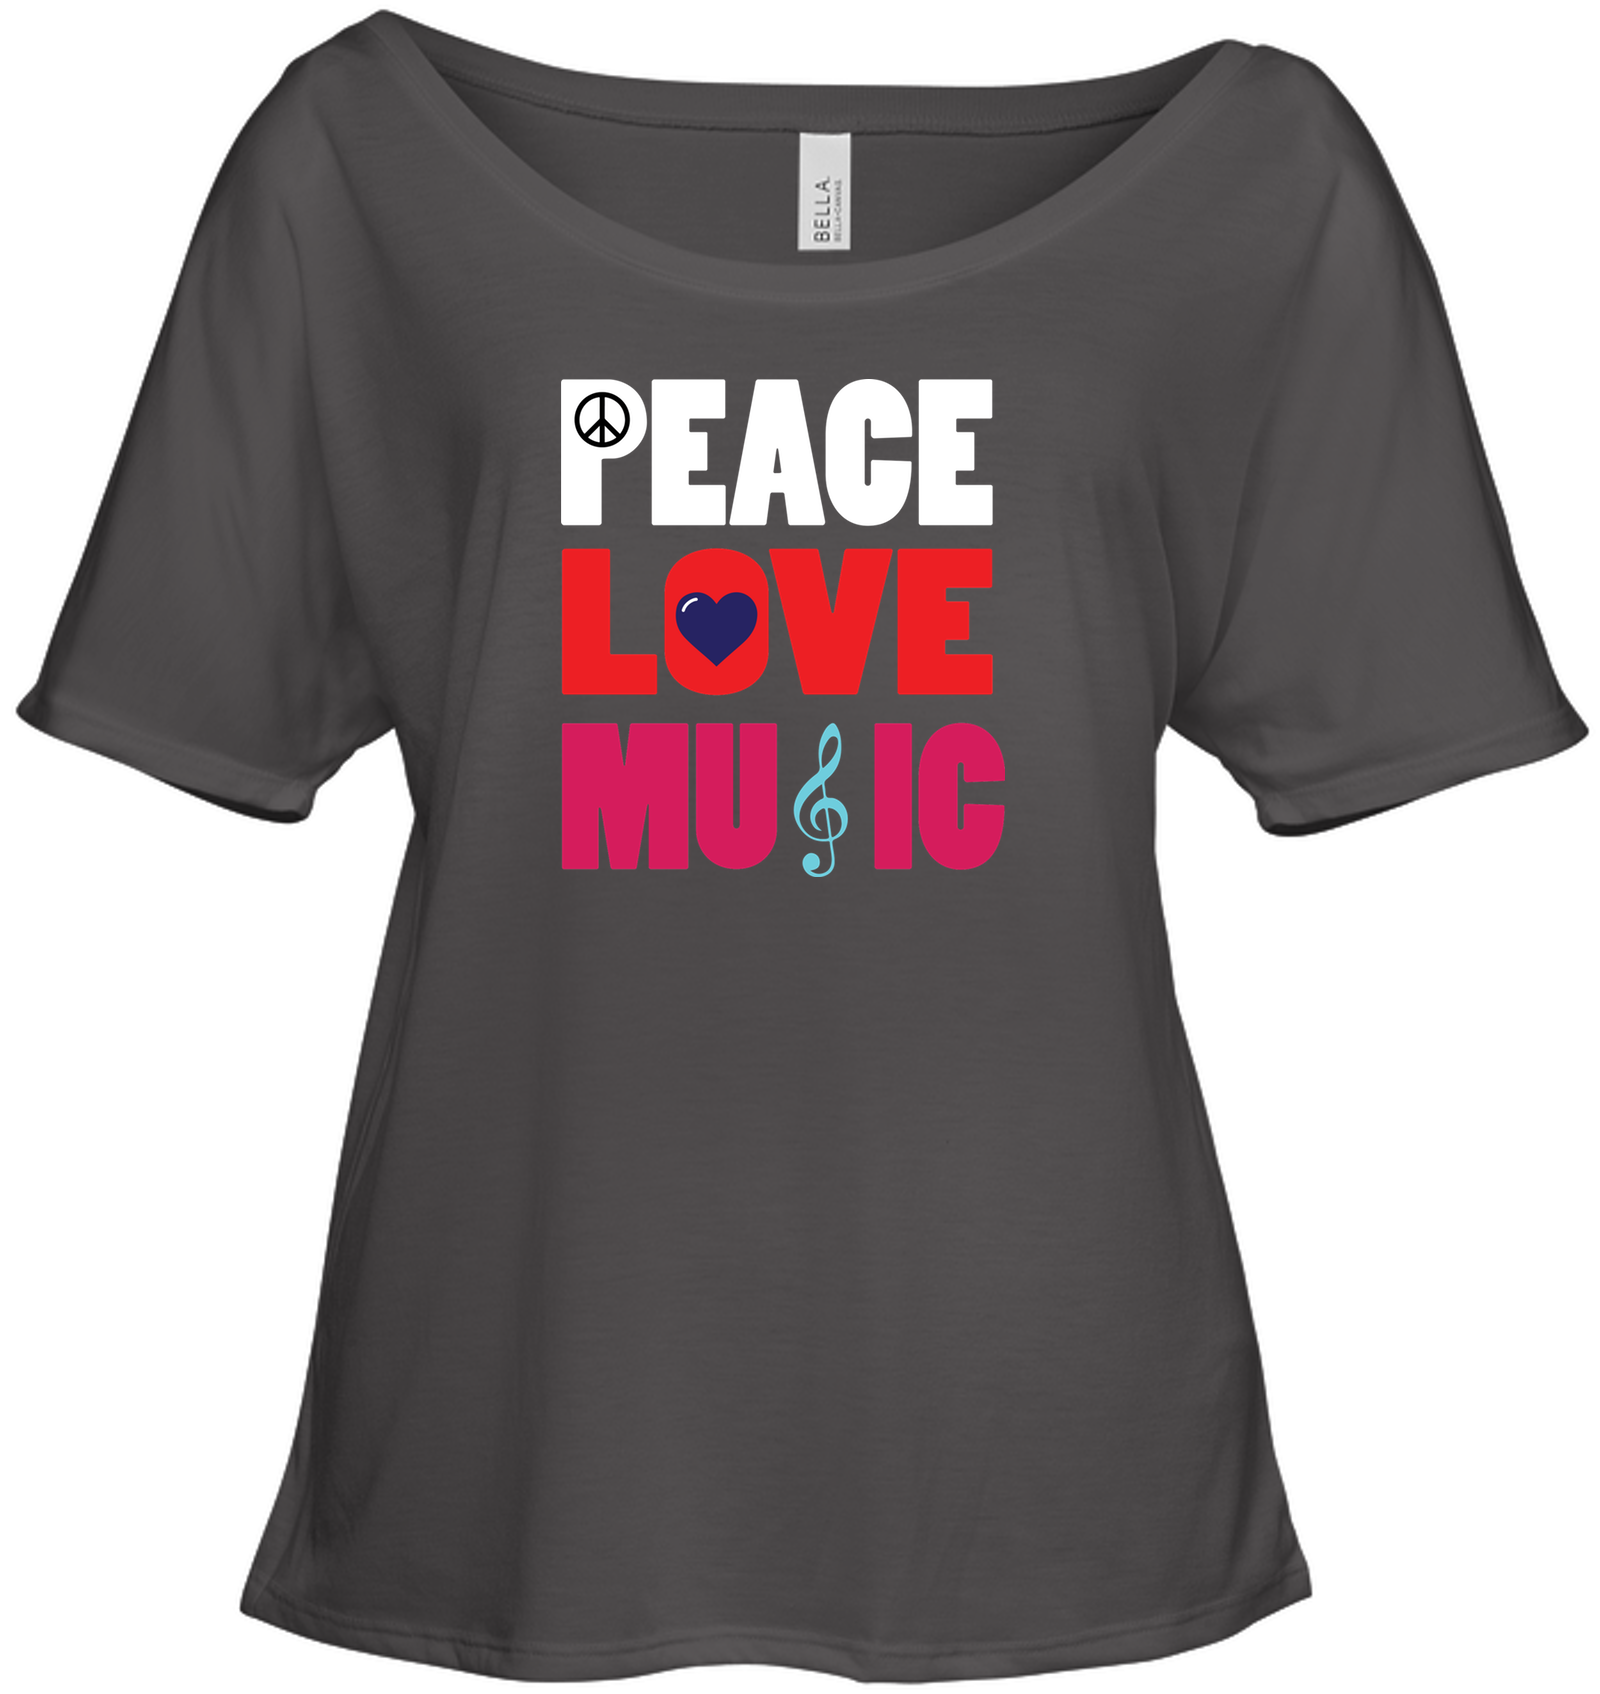 Peace Love Music - Bella + Canvas Women's Slouchy Tee